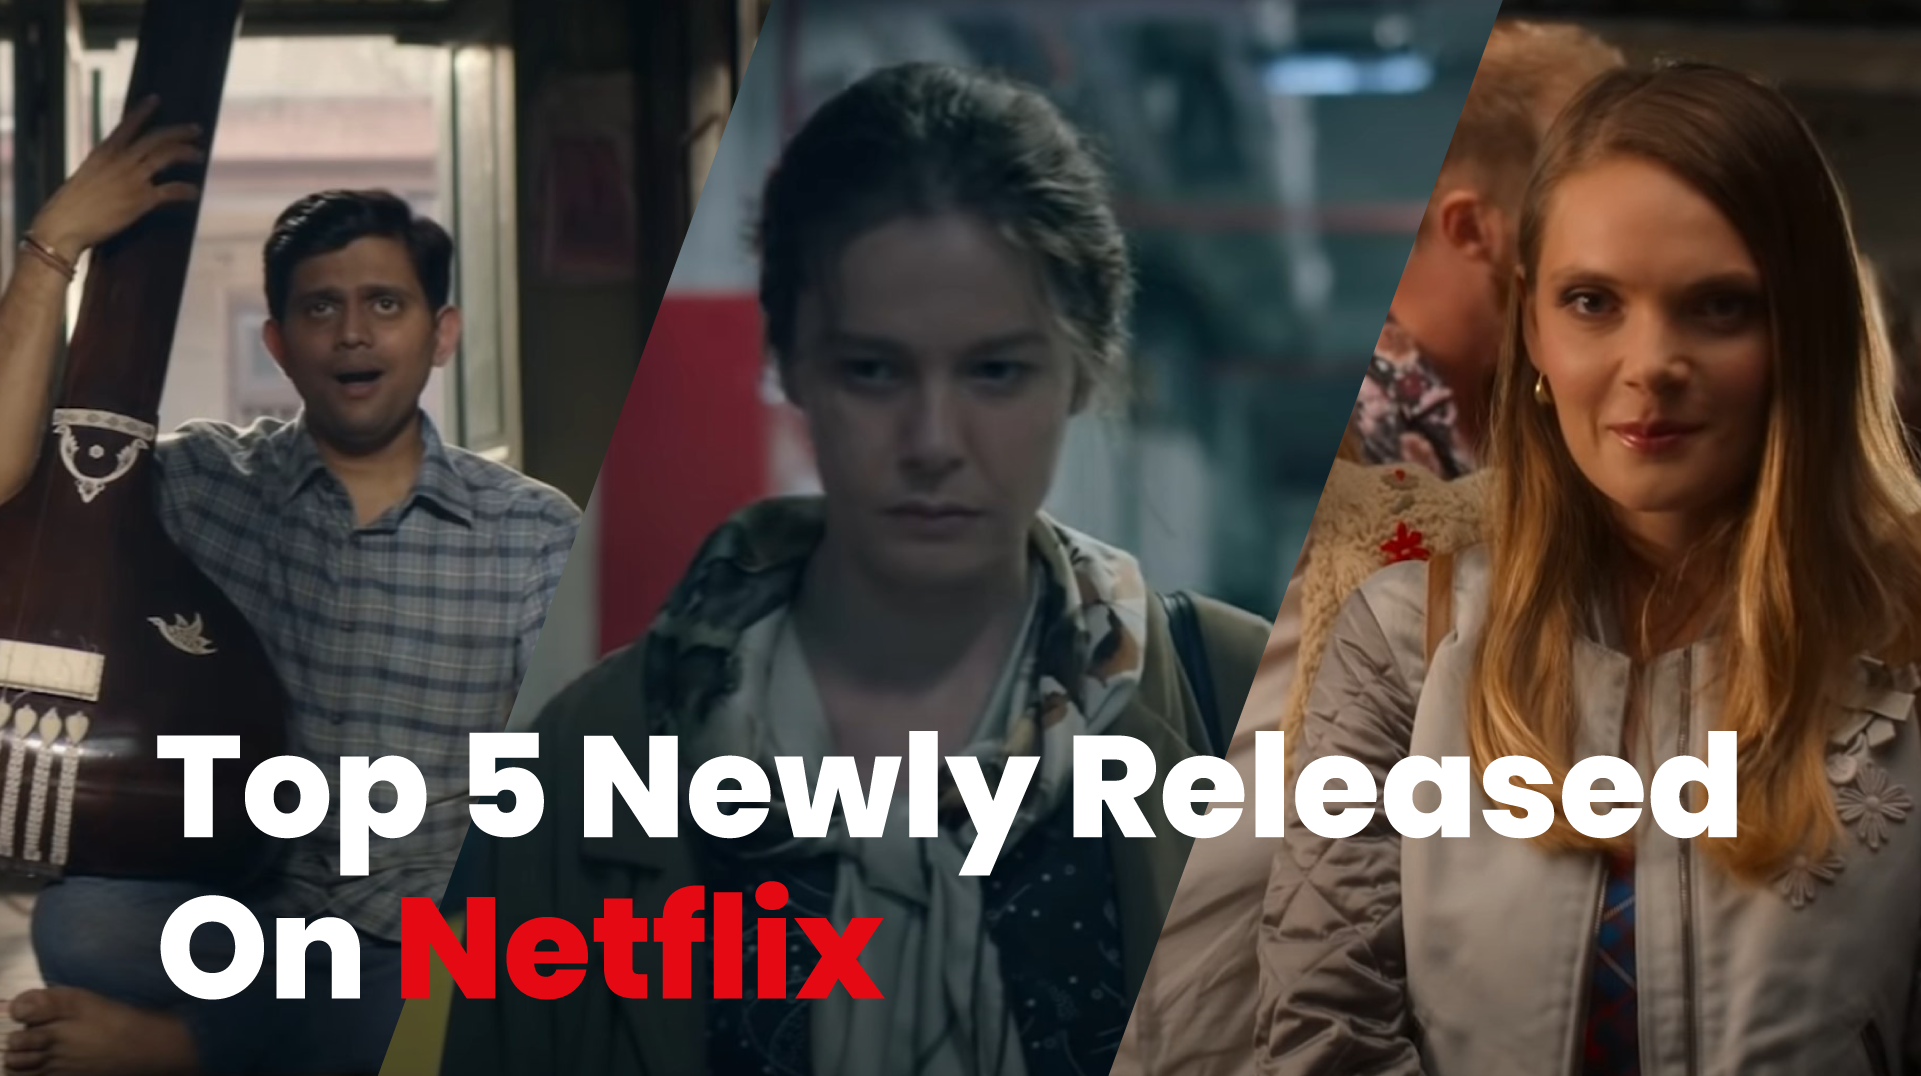 5 Newly Released Movies and TV Shows to Watch on Netflix this Weekend!